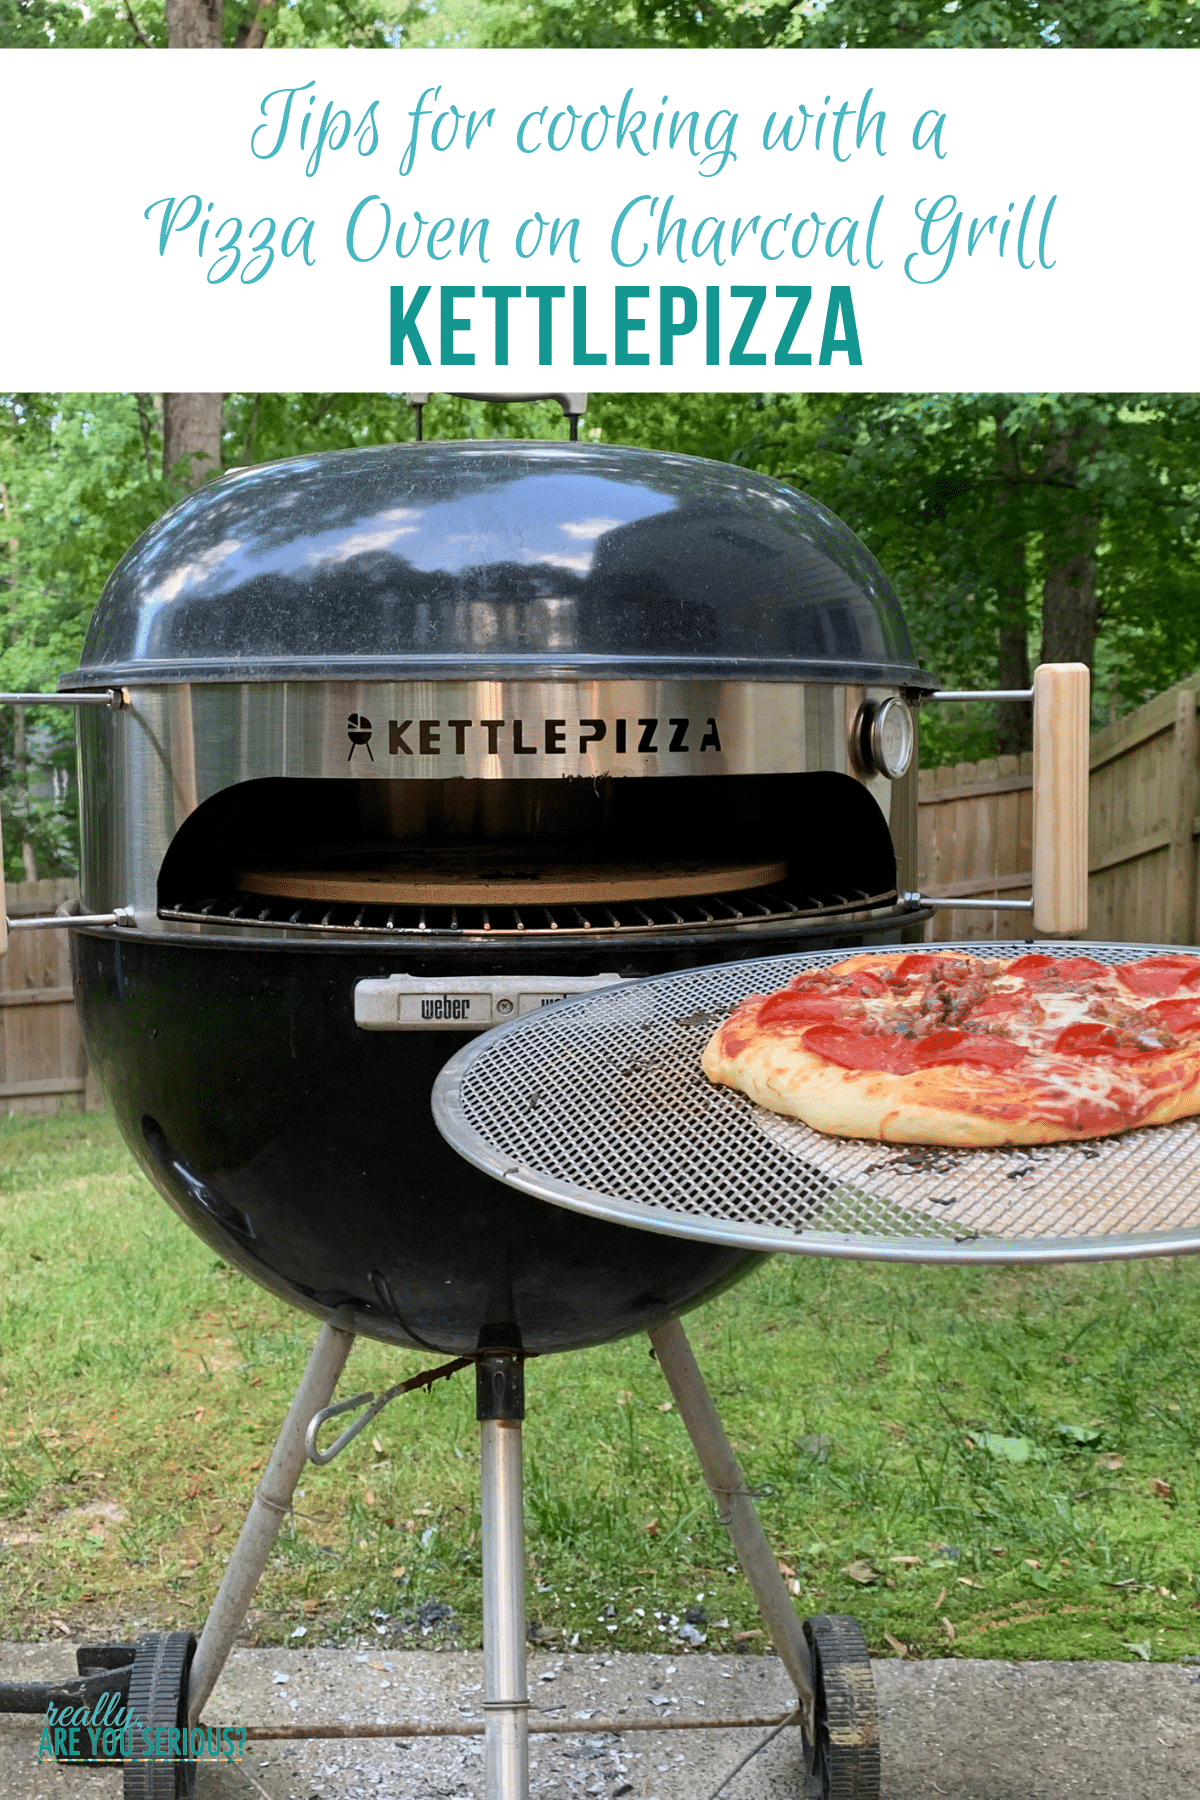 Tips for cooking with a Pizza Oven on Charcoal Grill kettlepizza